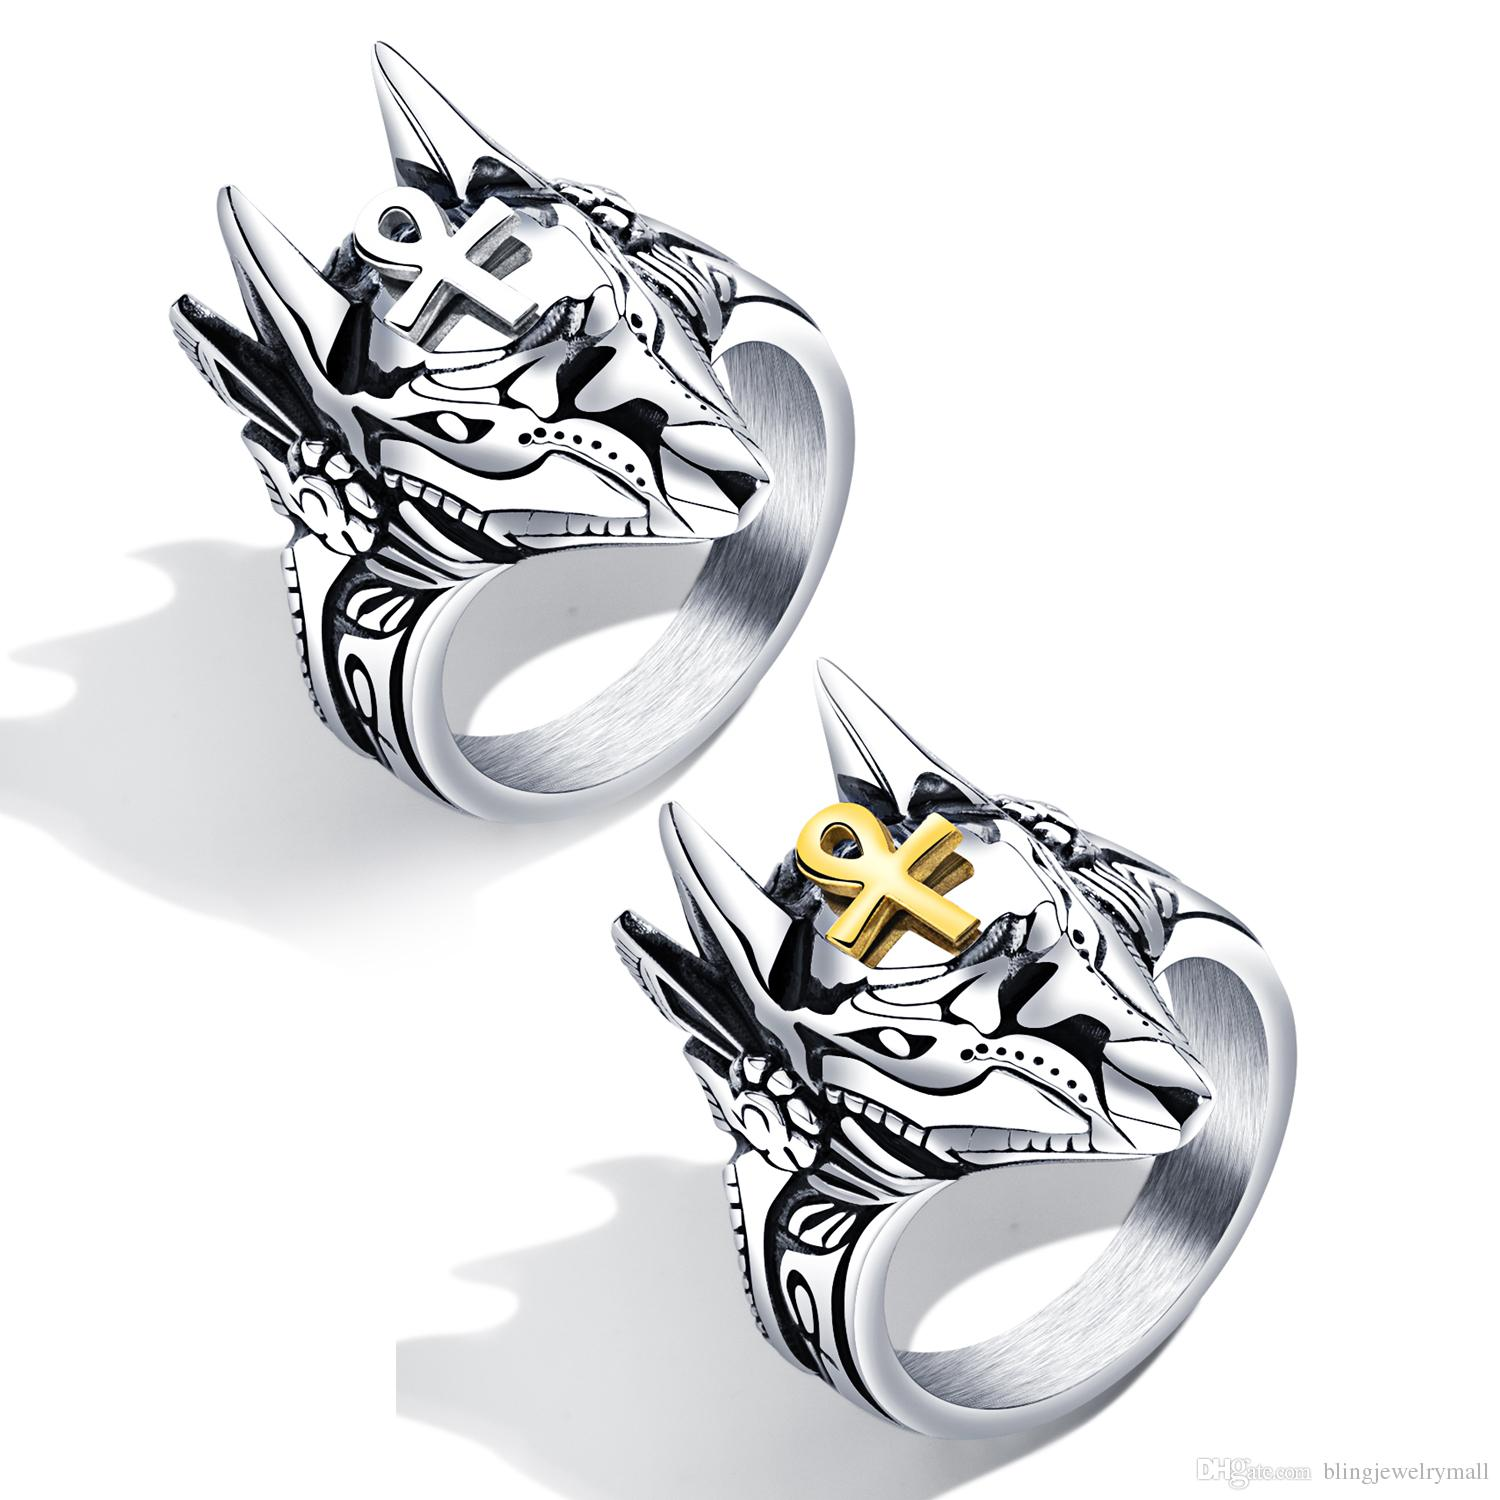 New Fashion Anubis ID Rings Male Jewelry Men's Rings Gift For Party Cross Animals Punk Jewelry Steel Color GJ626